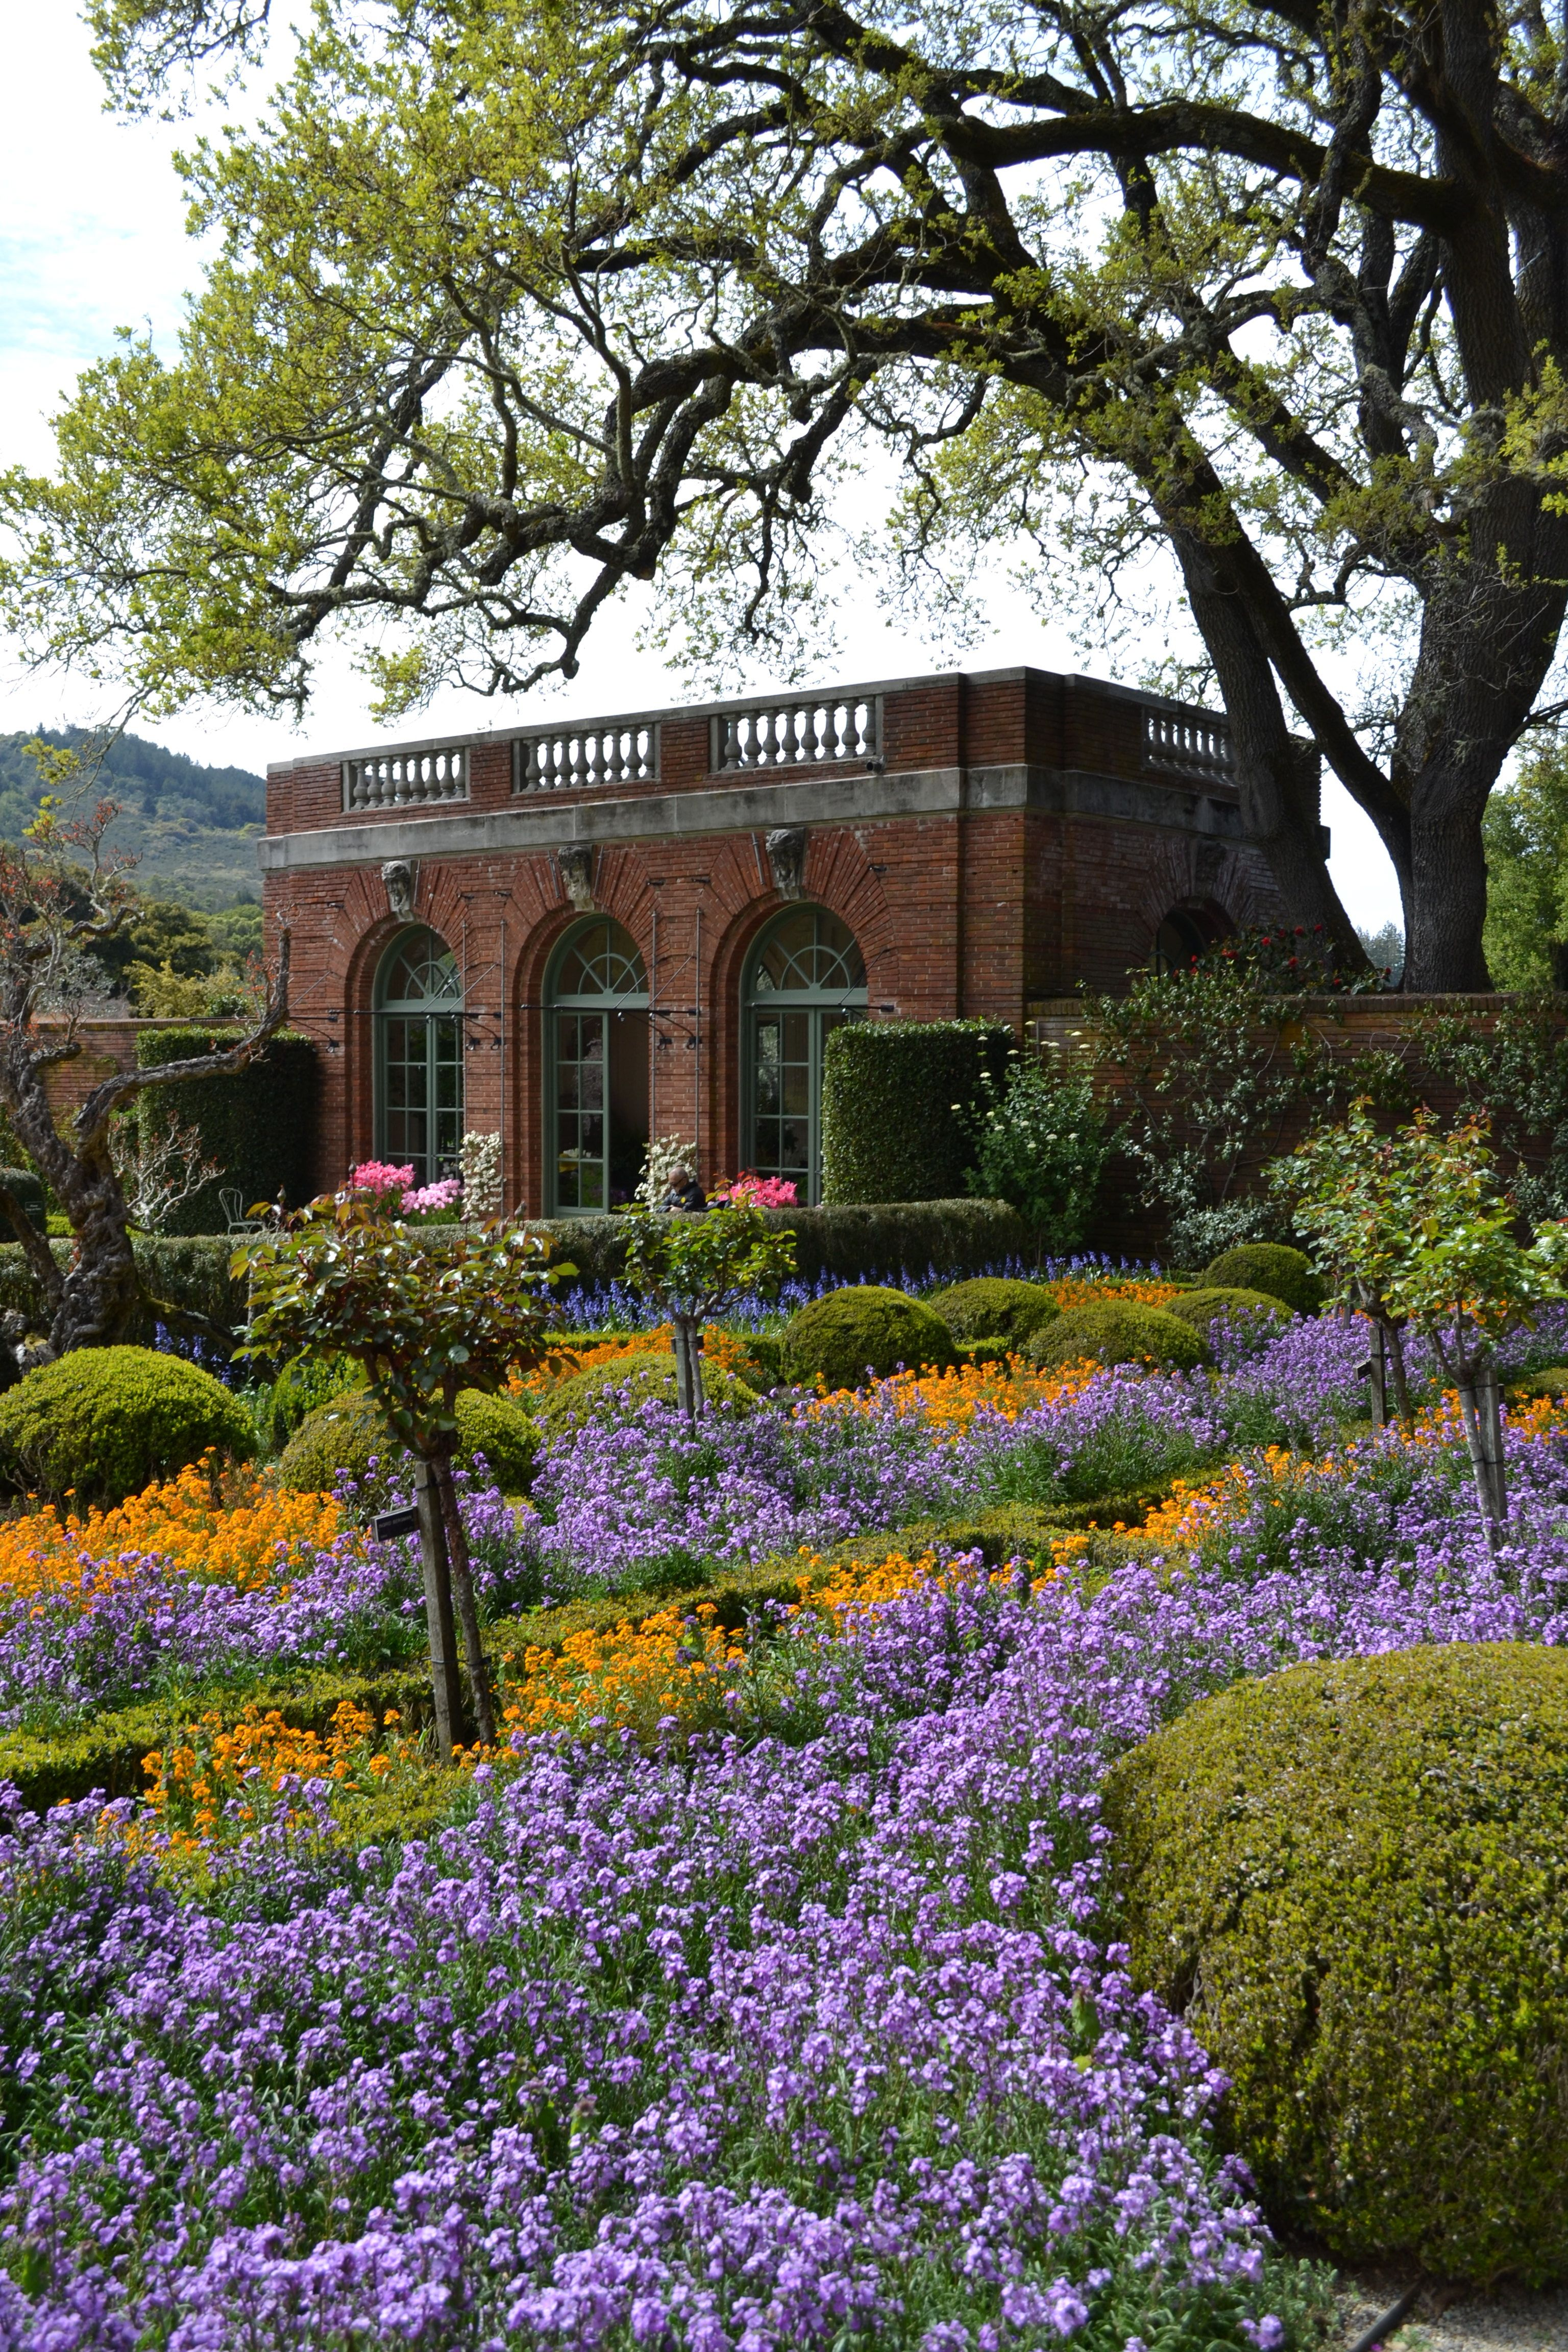 Filoli mansion near my house  designed after Muckross house in Killarney Ireland  Filoli